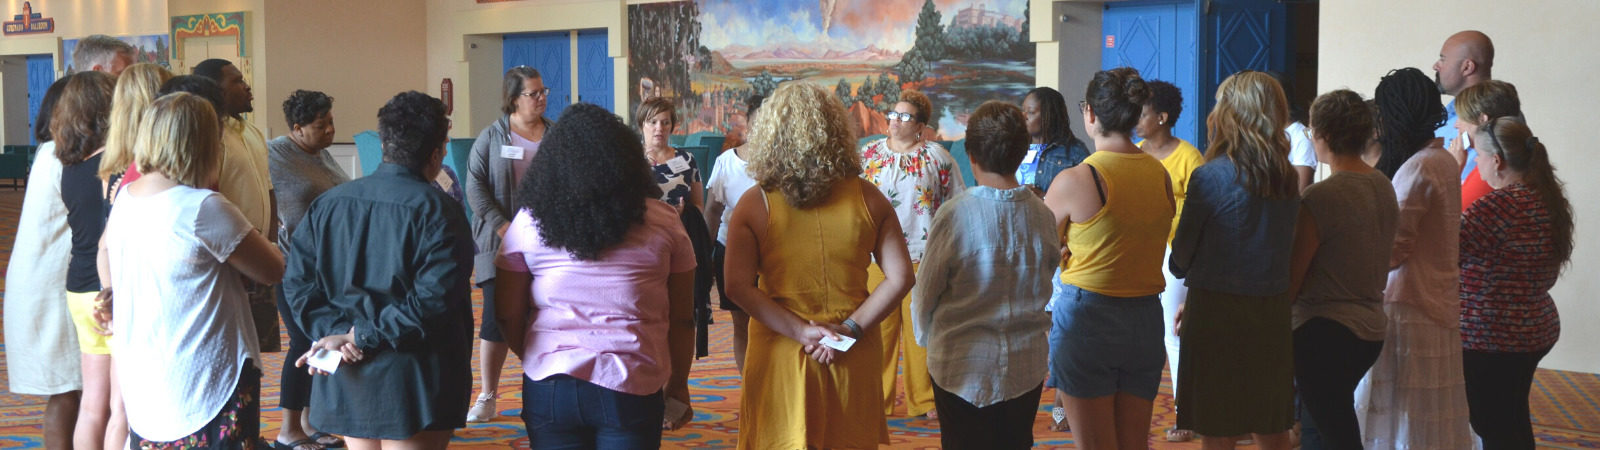 Educators gathered in a circle during a Pegasus Springs Education Collective event